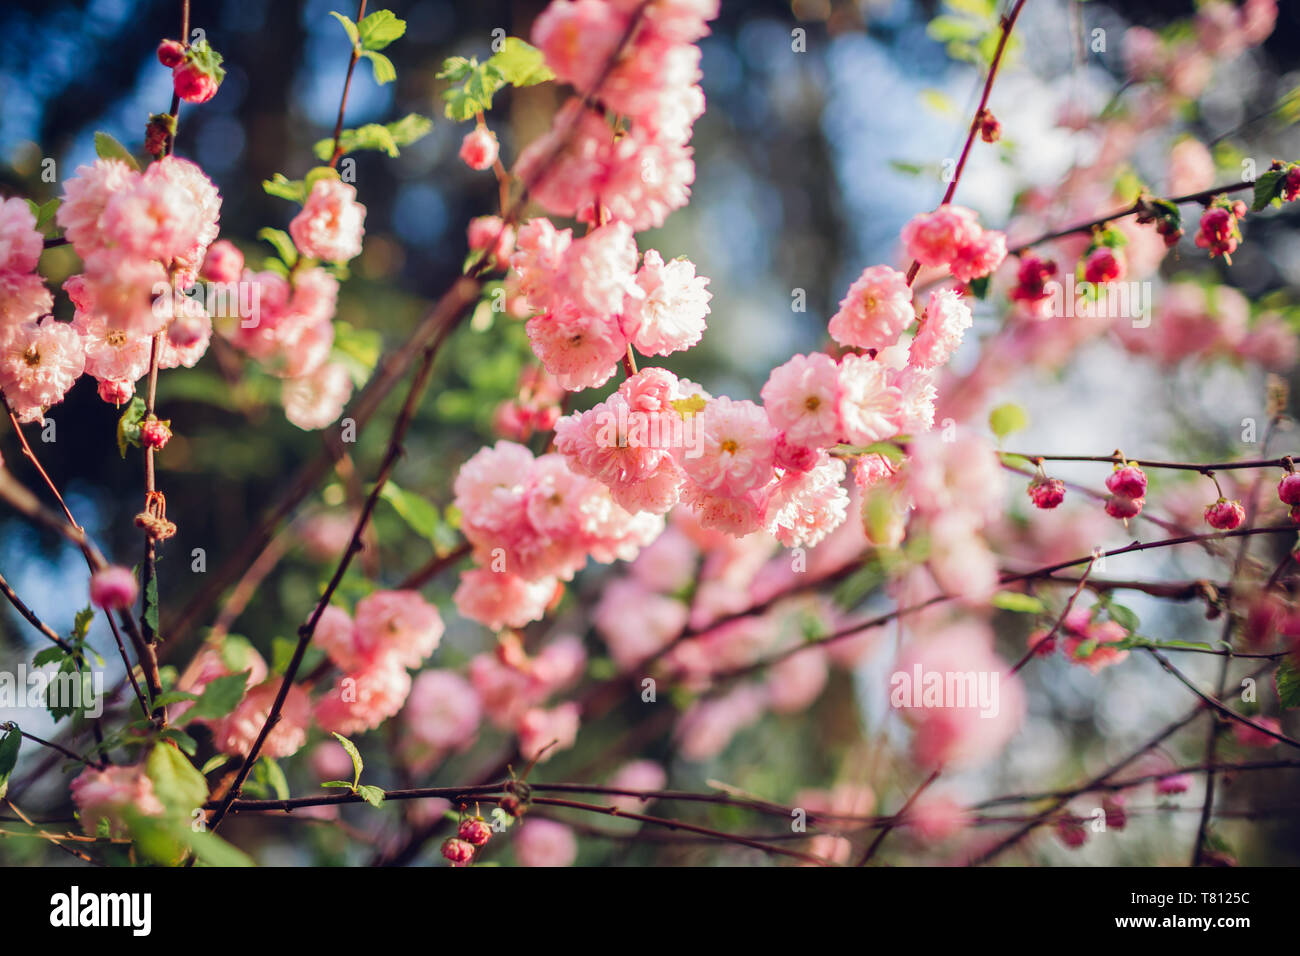 Close up of blooming luiseania in spring garden. Blossoming pink flowers of almond three-blade. - Stock Image